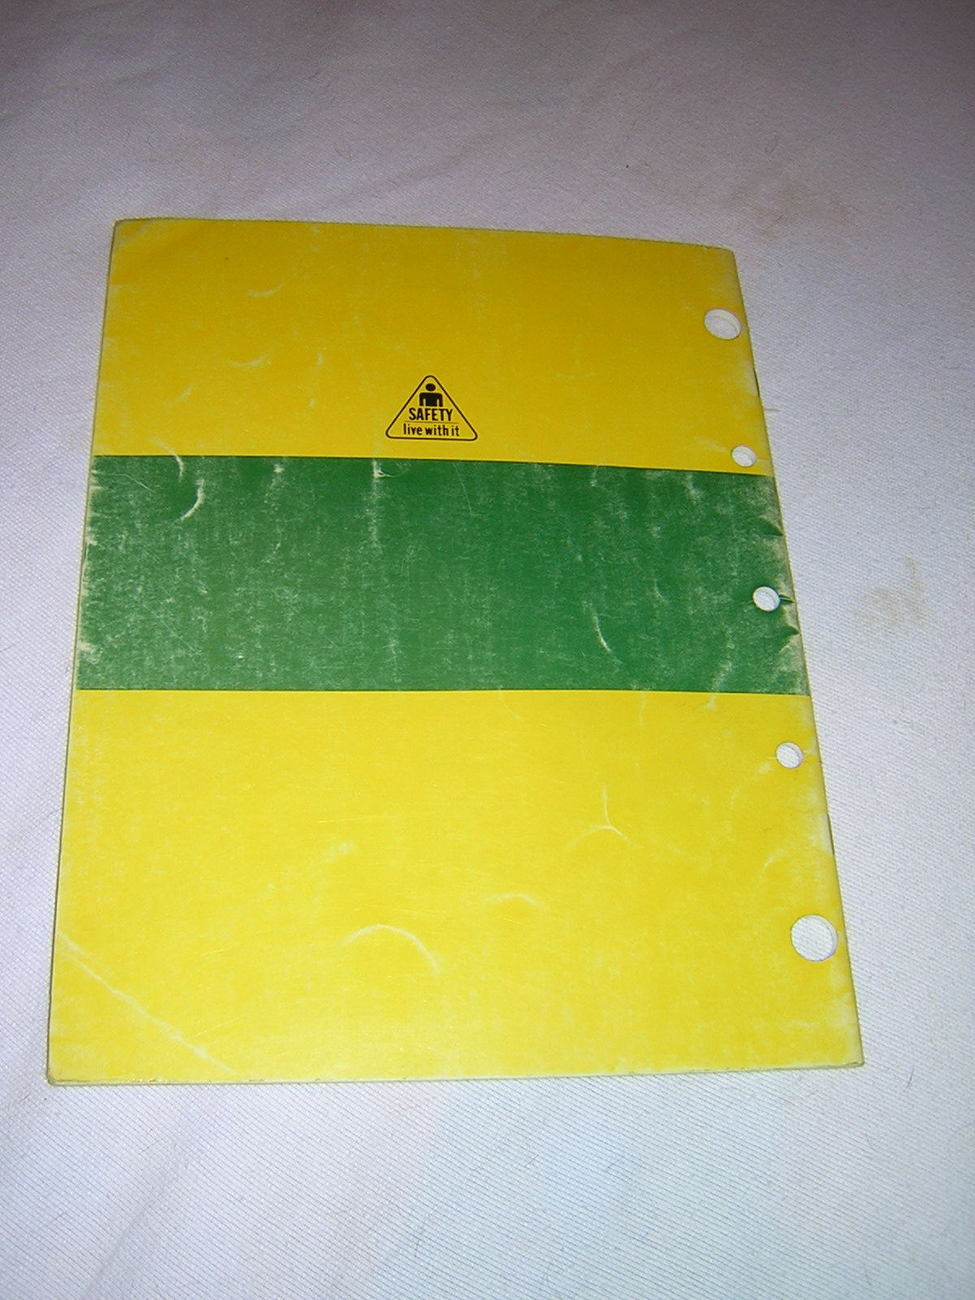 JD TY24375/TY24376 Pushed and TY24377/TY24378 Towed Spreader Operator's Manual